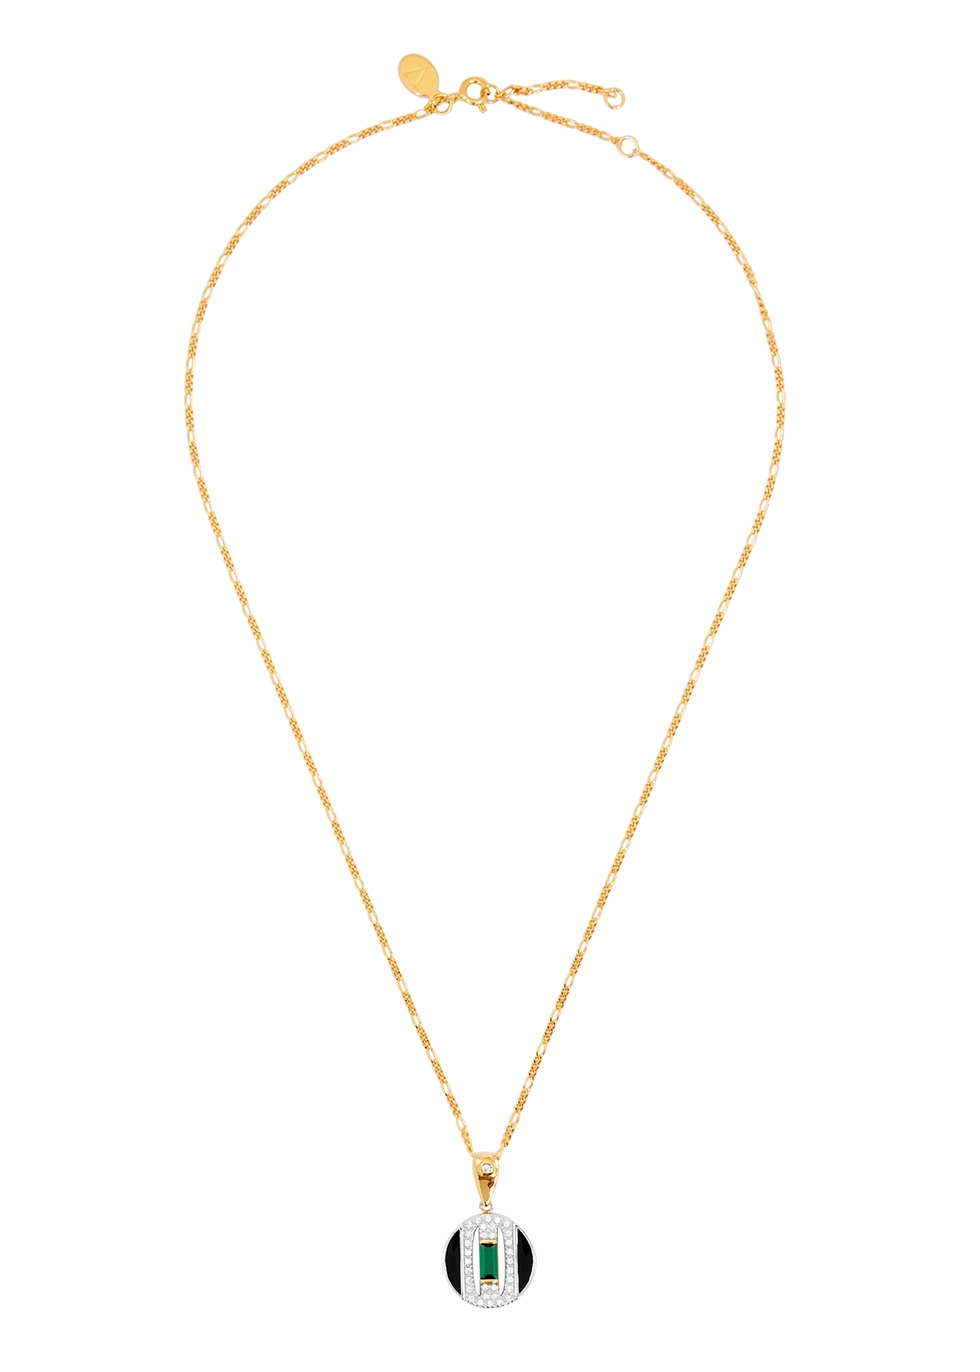 Daphne 18kt gold-plated necklace